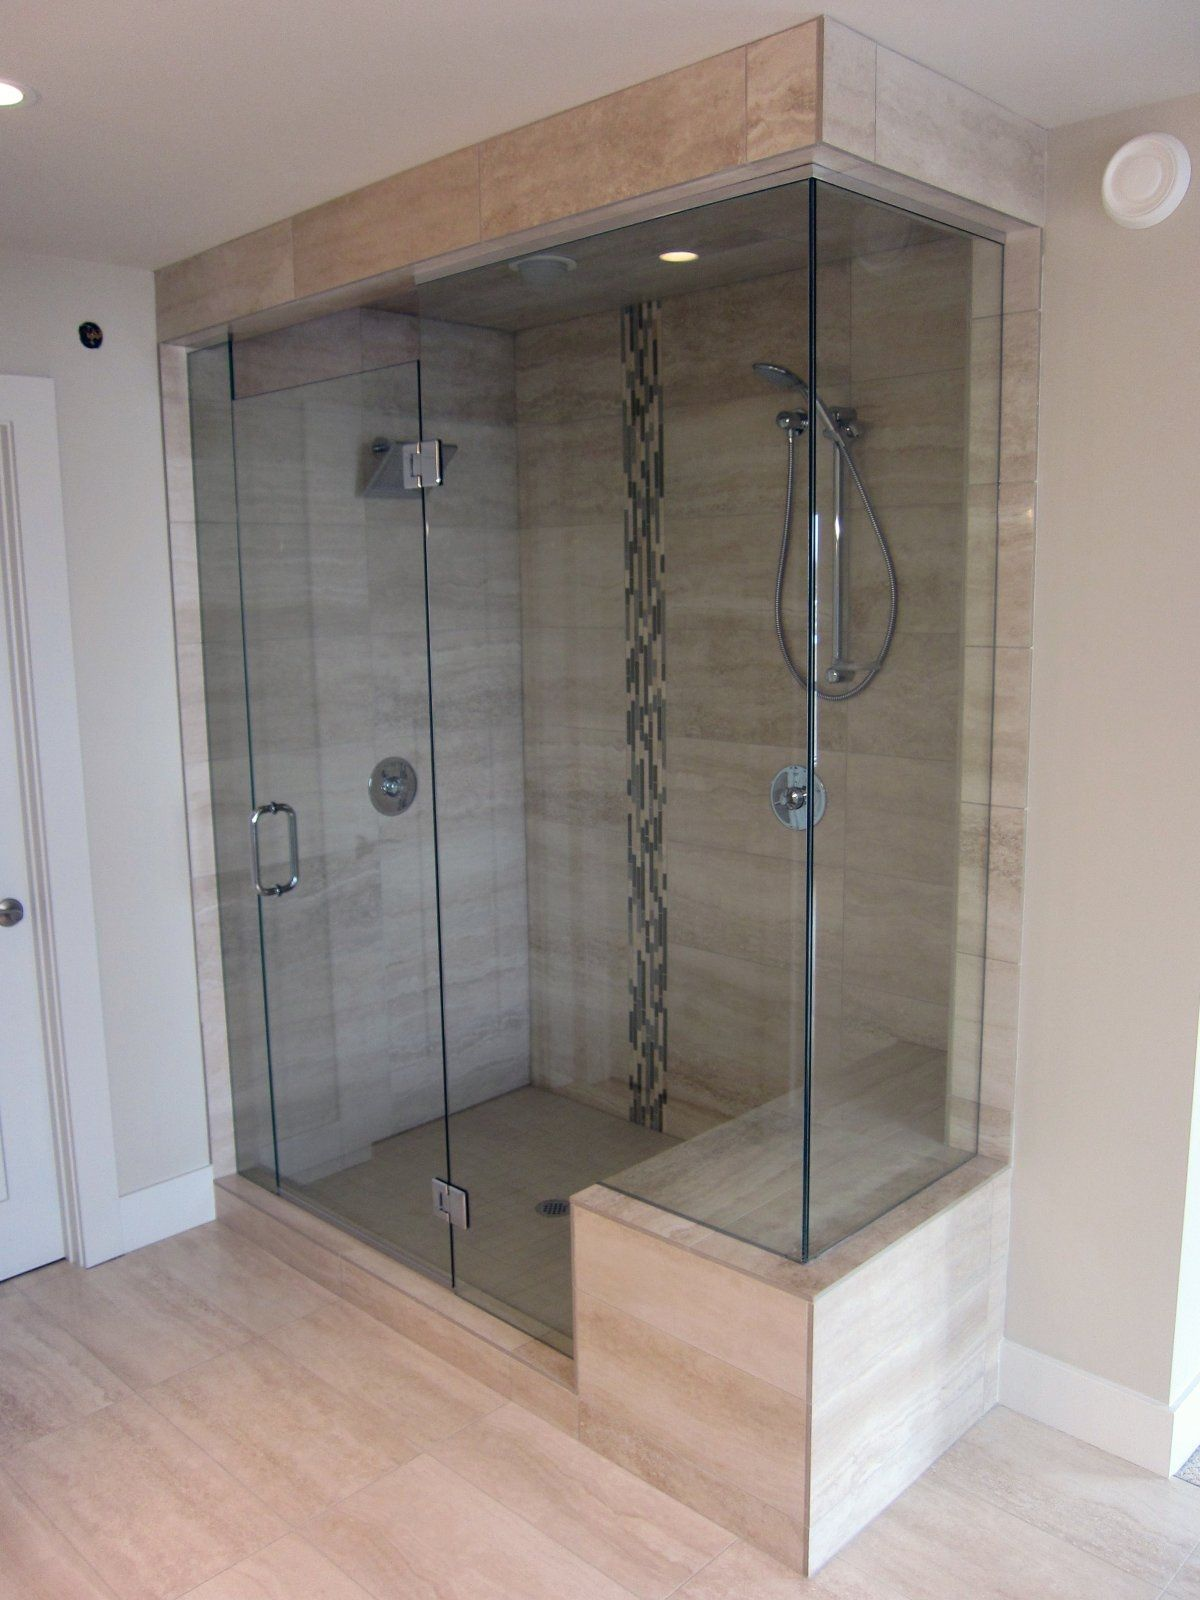 Shower Glass Door Tile Cheryl Pinterest Frameless Shower Doors Glass Doors And Showers